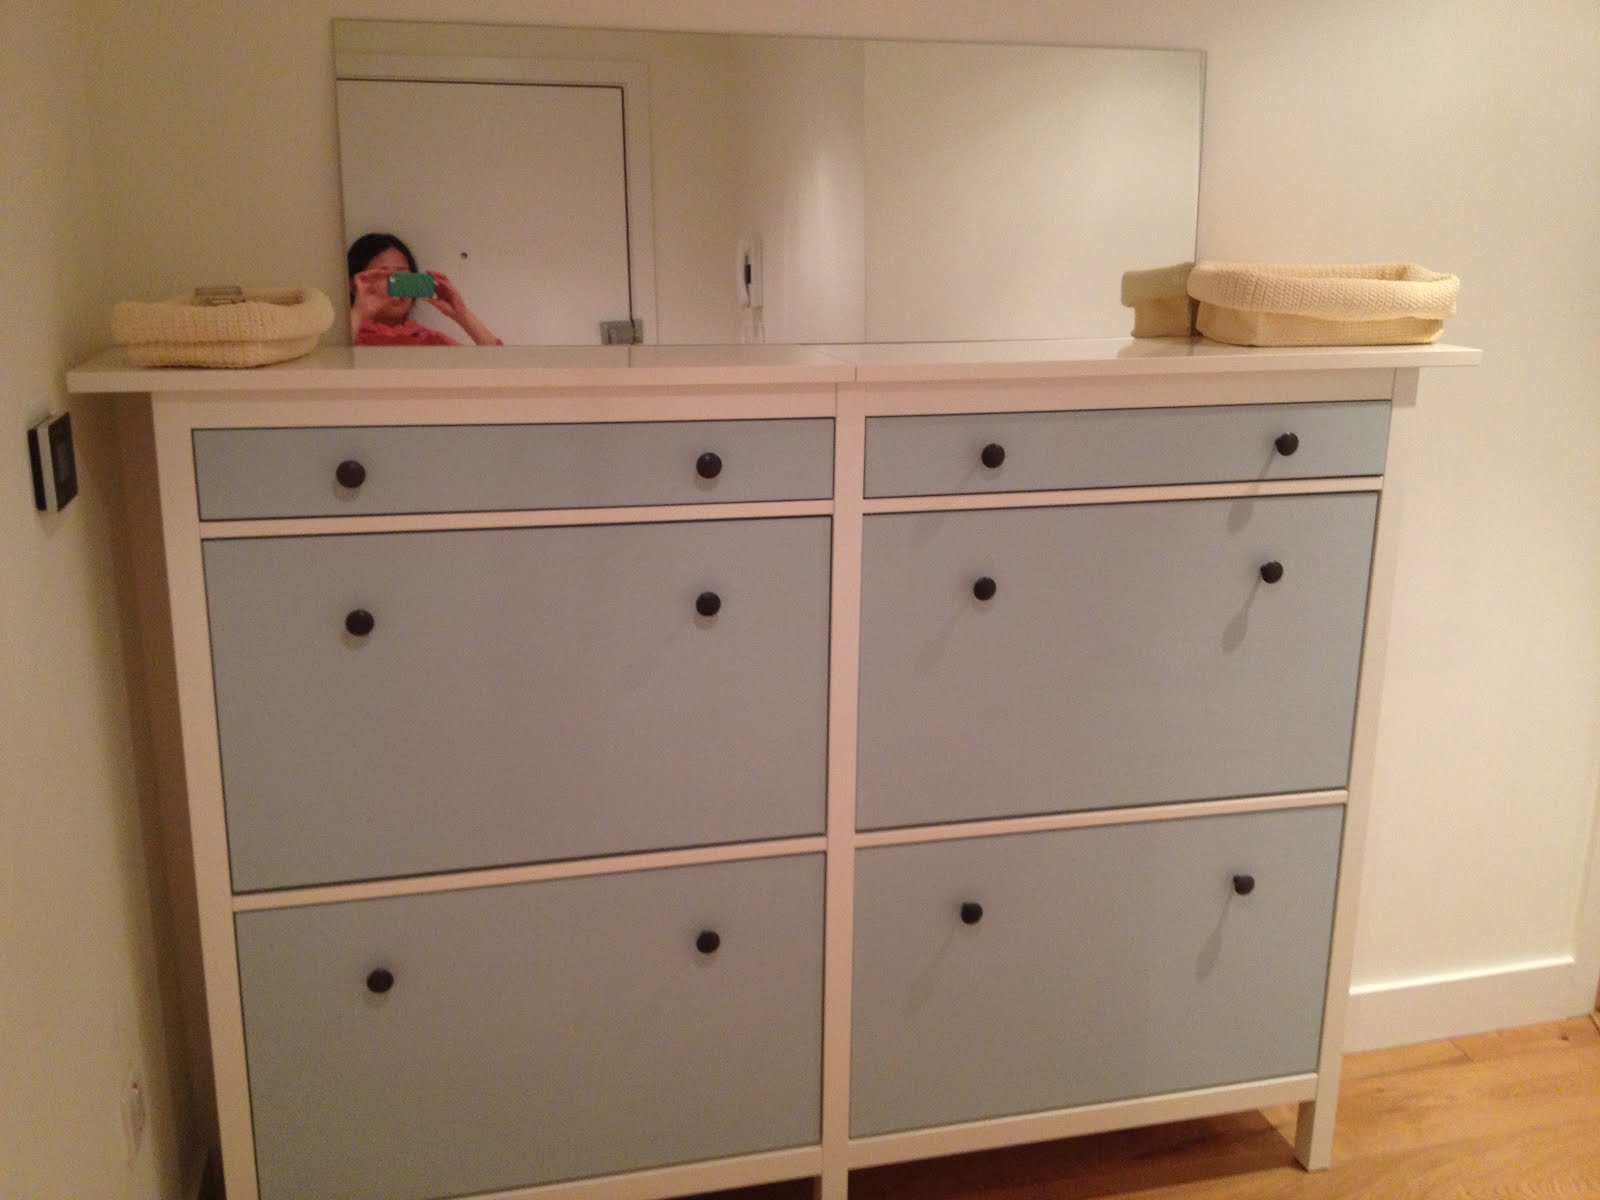 Wedded Hemnes Shoe Cabinets Twined And Painted IKEA Hackers